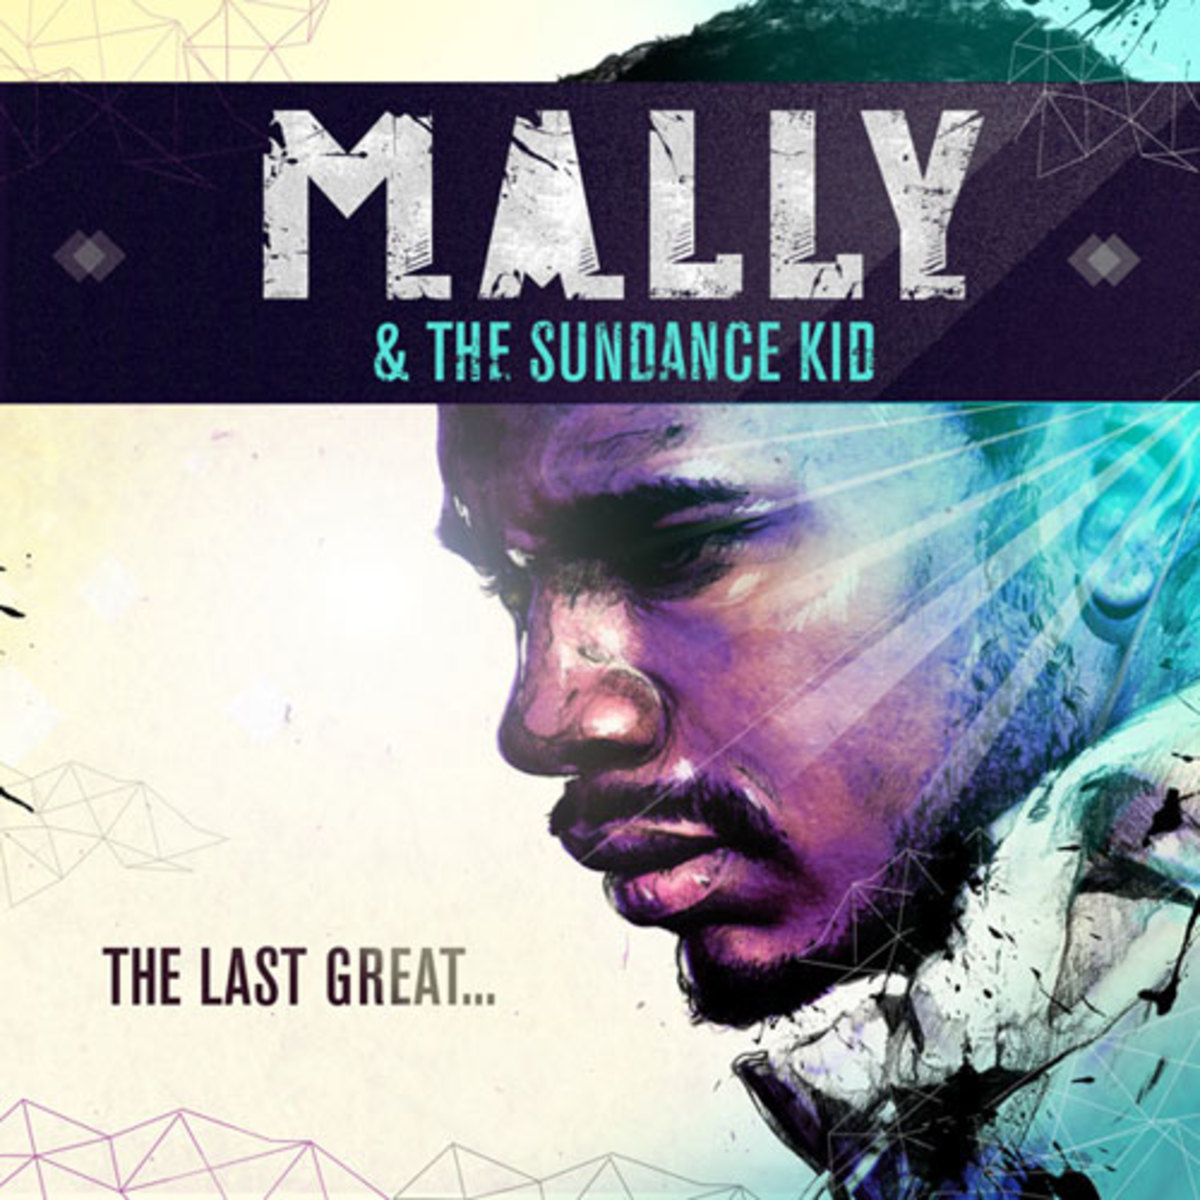 mally-thelastgreat.jpg